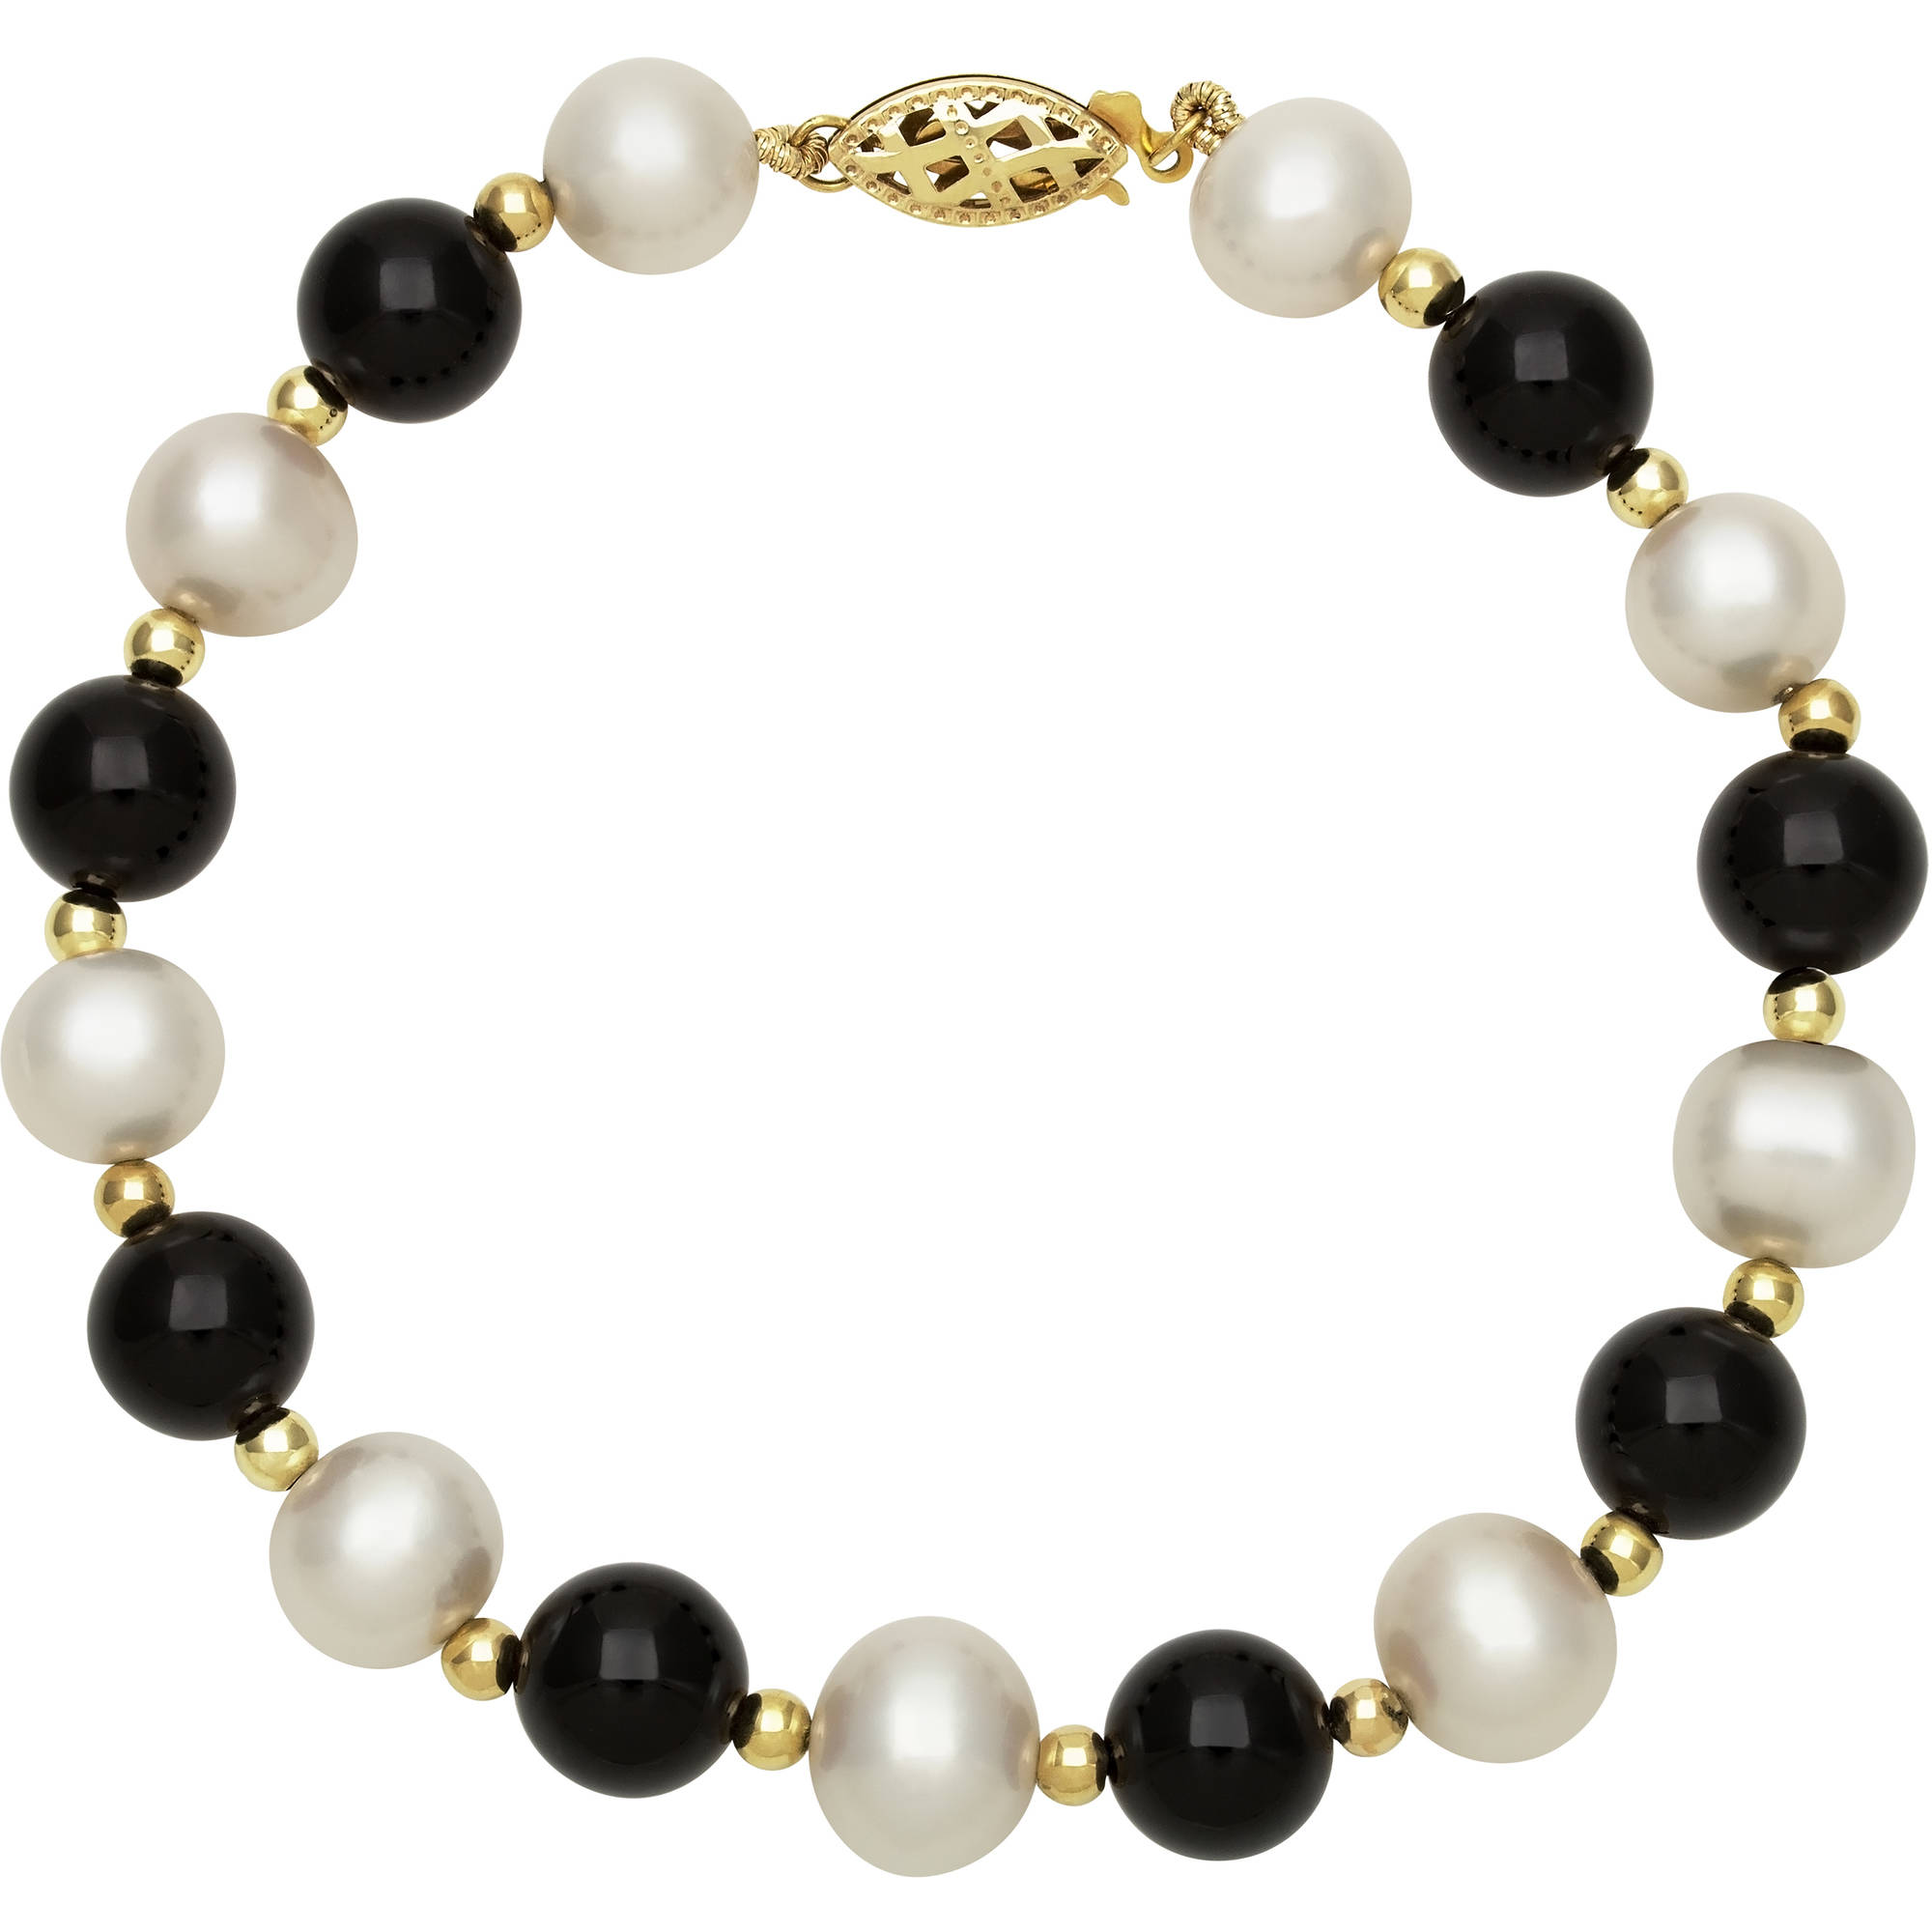 Genuine Cultured Freshwater Pearl and Black Onyx 14K Yellow Gold Strand Bracelet, 7.5